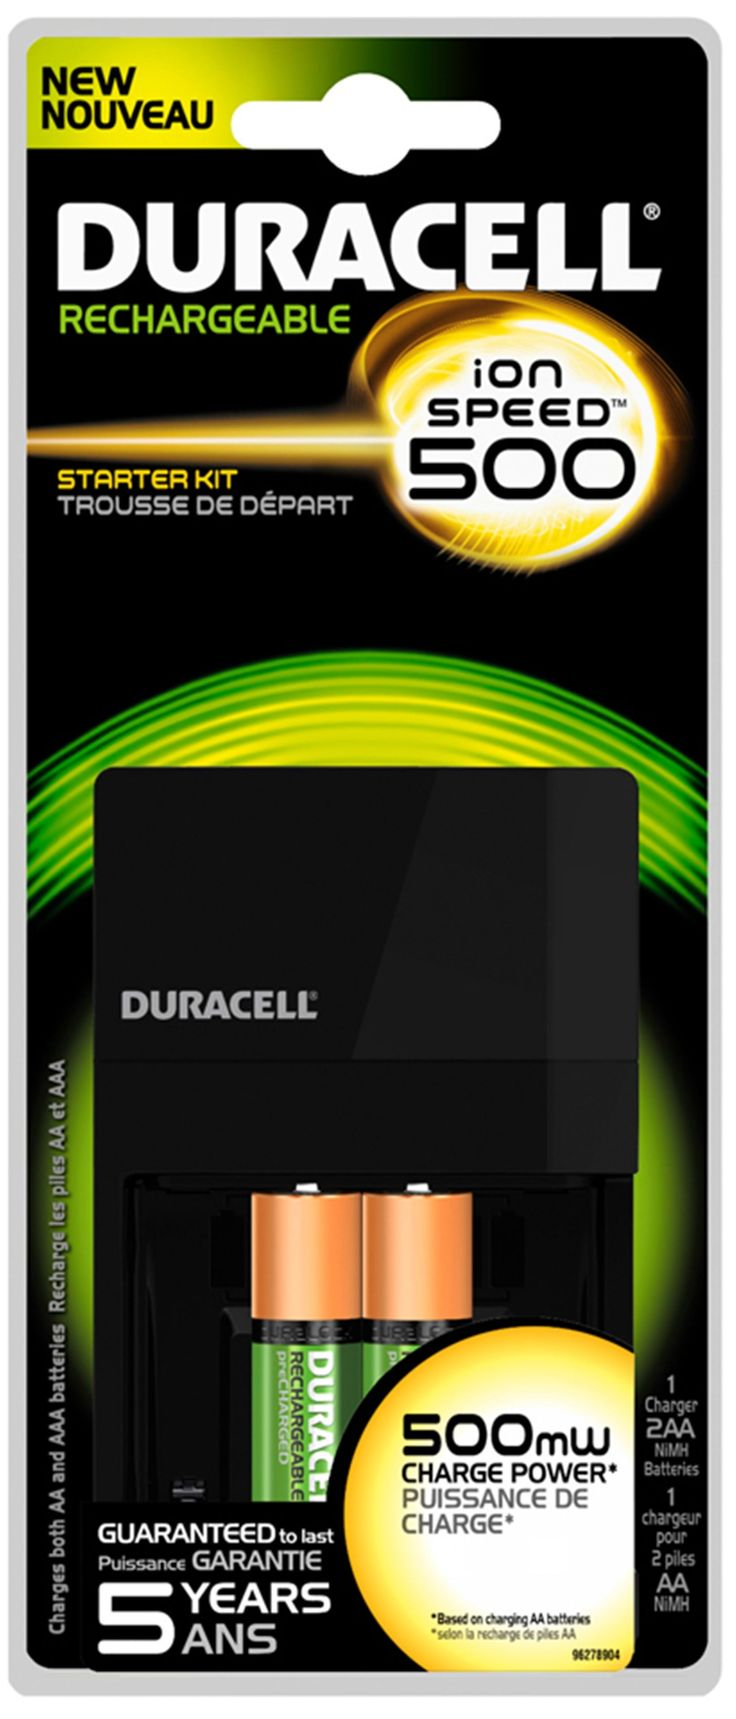 Duracell Ion Speed 500 Battery Charger BlisterKmart